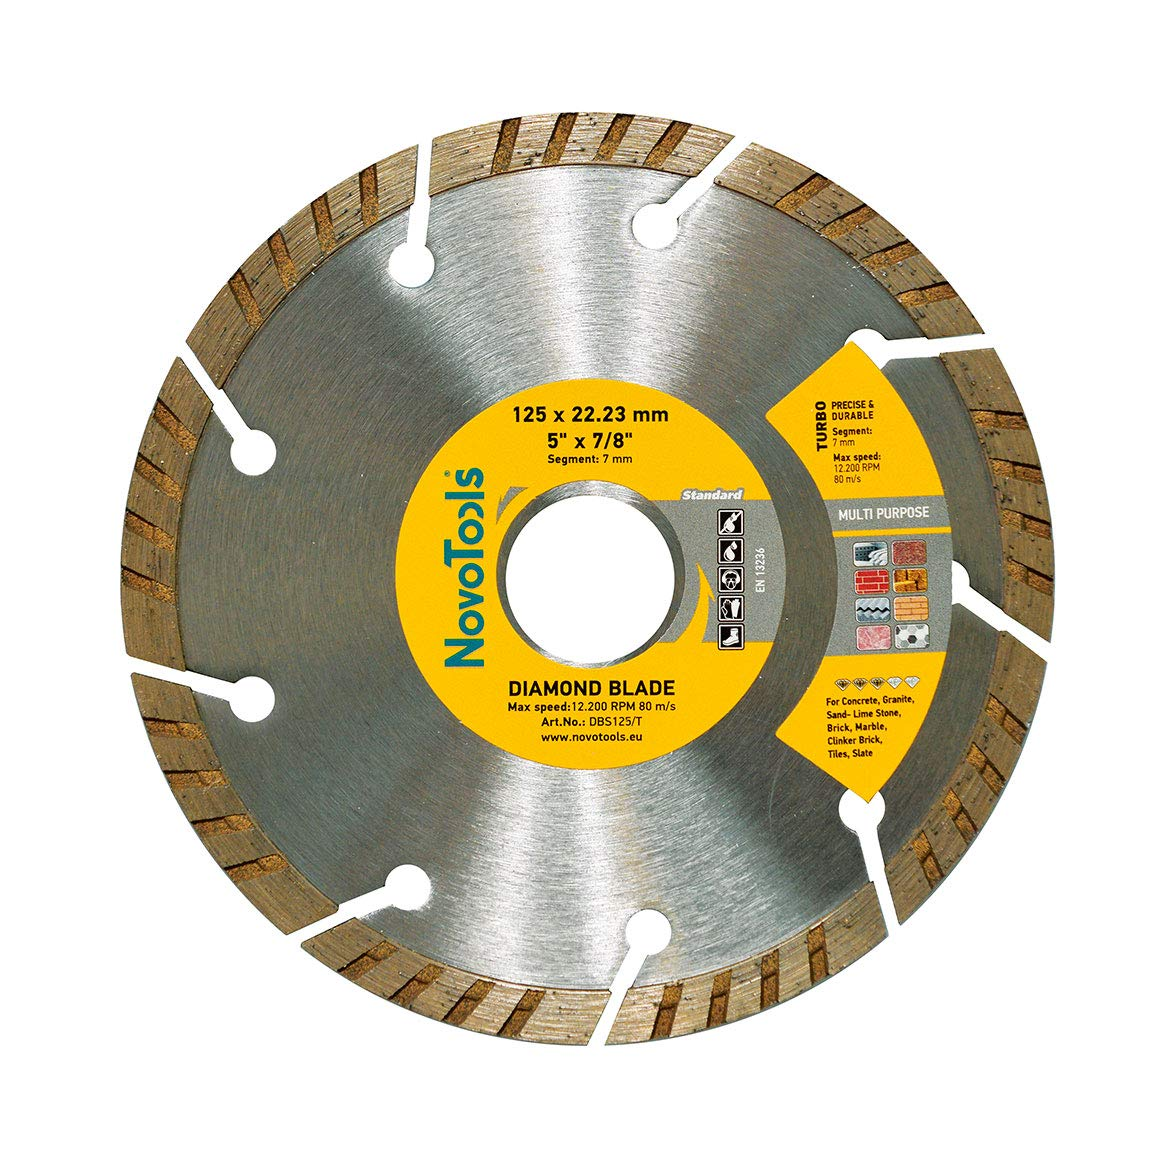 Blade 115 x 22.2mm NOVOTOOLS Diamond Continuous Porcelains Tile Universal Cutting Diamond Disc for Angle Grinder for All Types of Ceramic Tiles